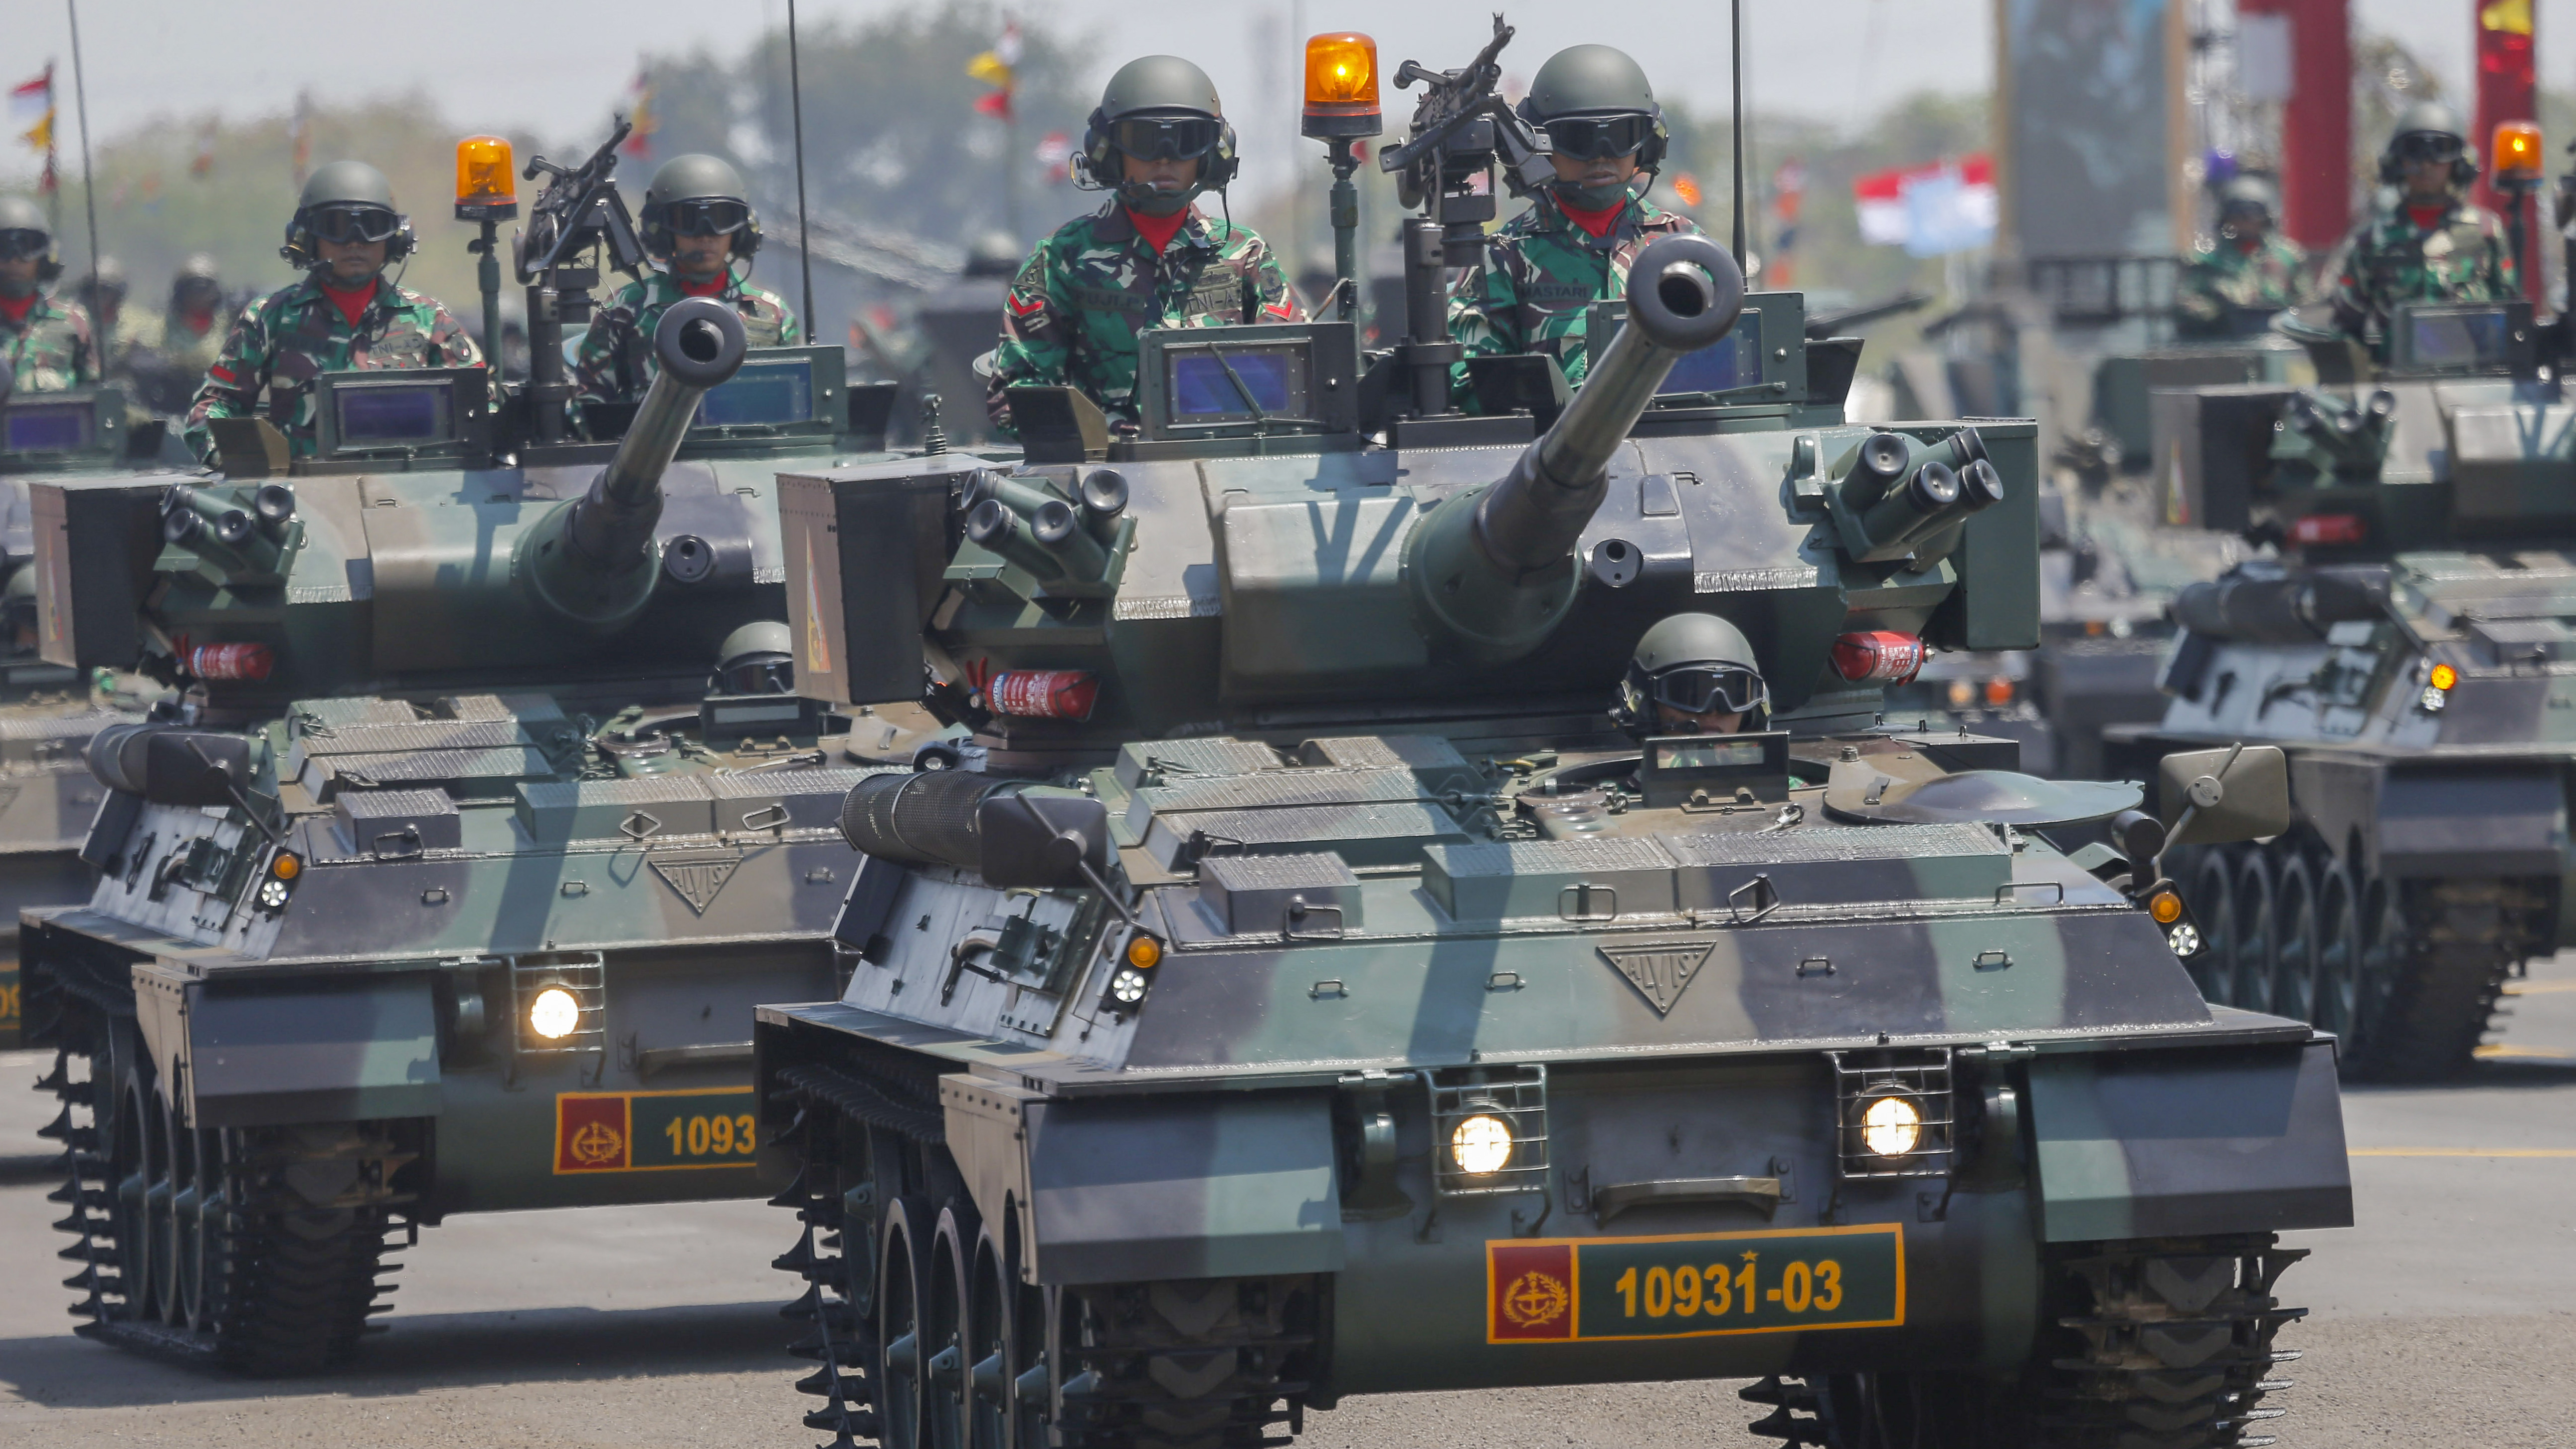 Indonesian soldiers parade on tanks march during a parade marking the 74th anniversary of the Indonesian Armed Forces in Jakarta, Indonesia, Saturday, Oct. 5, 2019. (AP Photo/Tatan Syuflana)